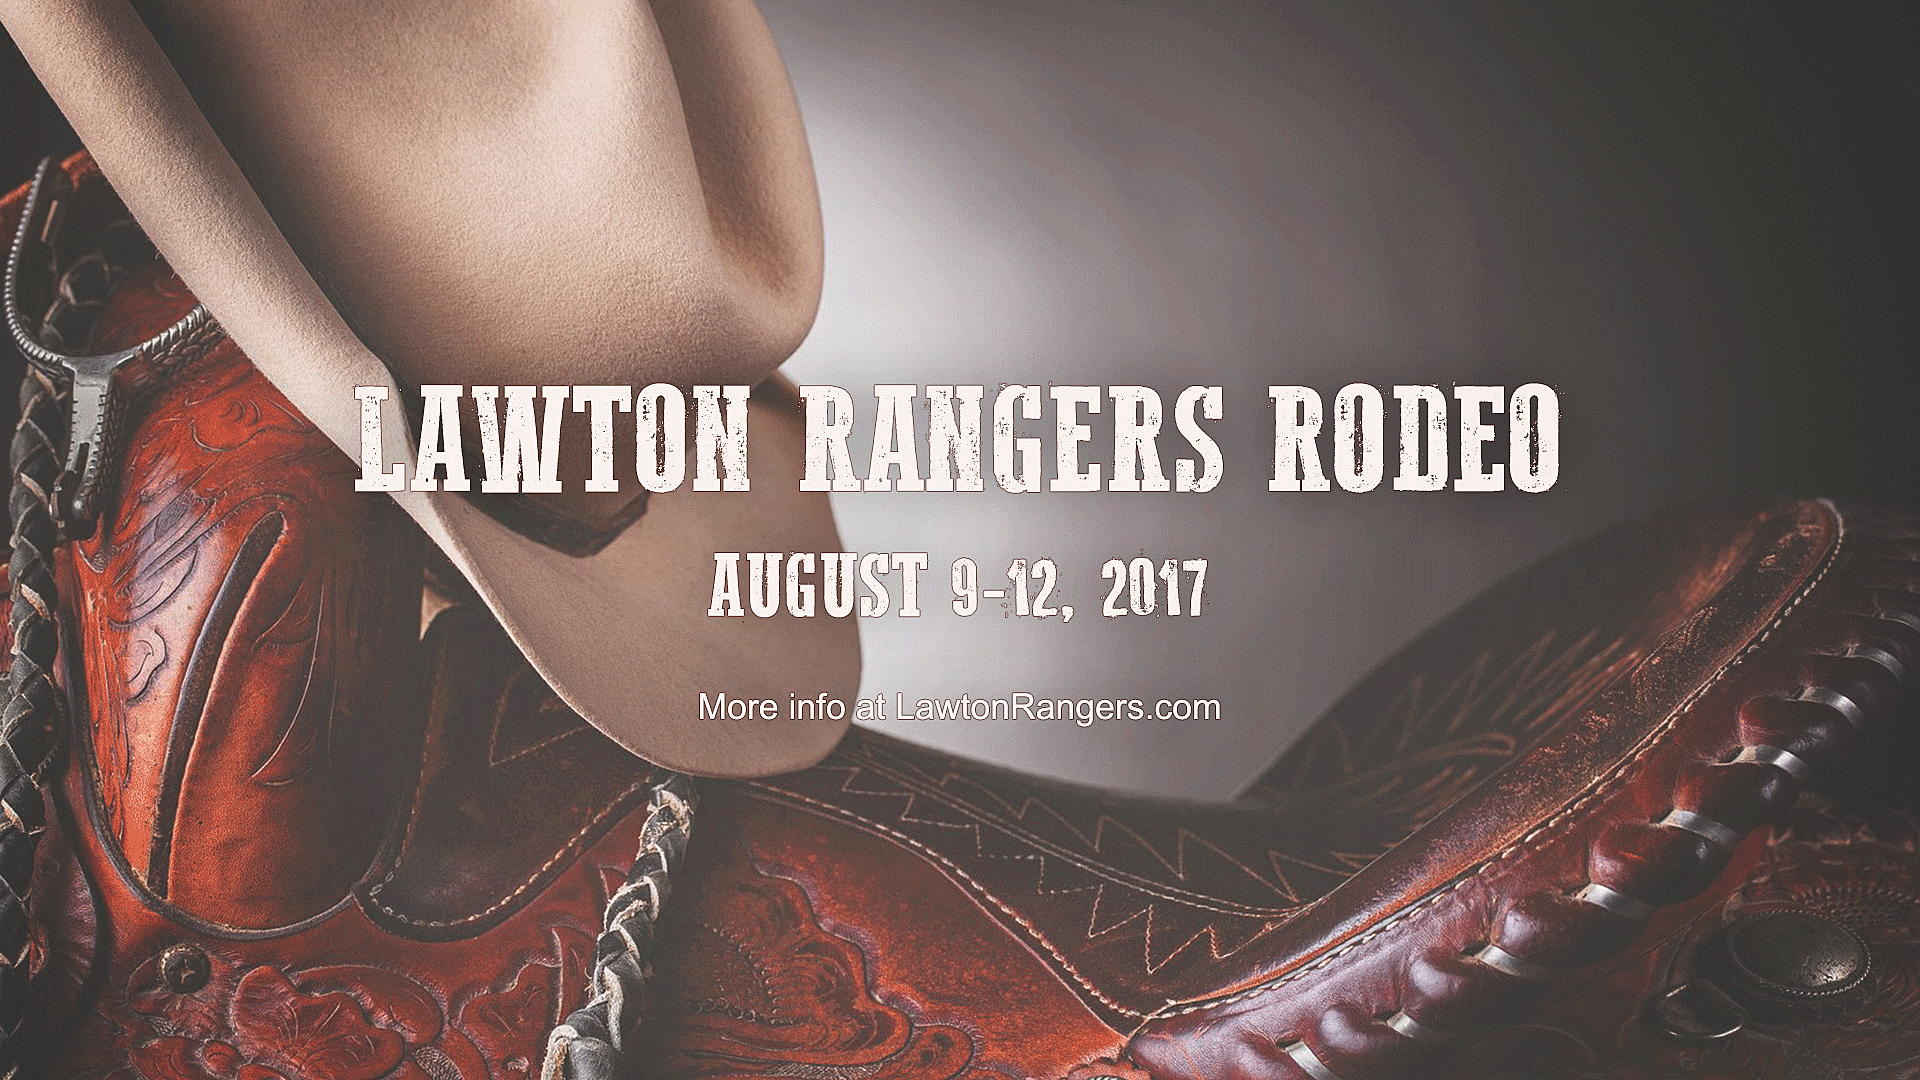 79th Annual Lawton Rangers Rodeo Coming To Town This Week